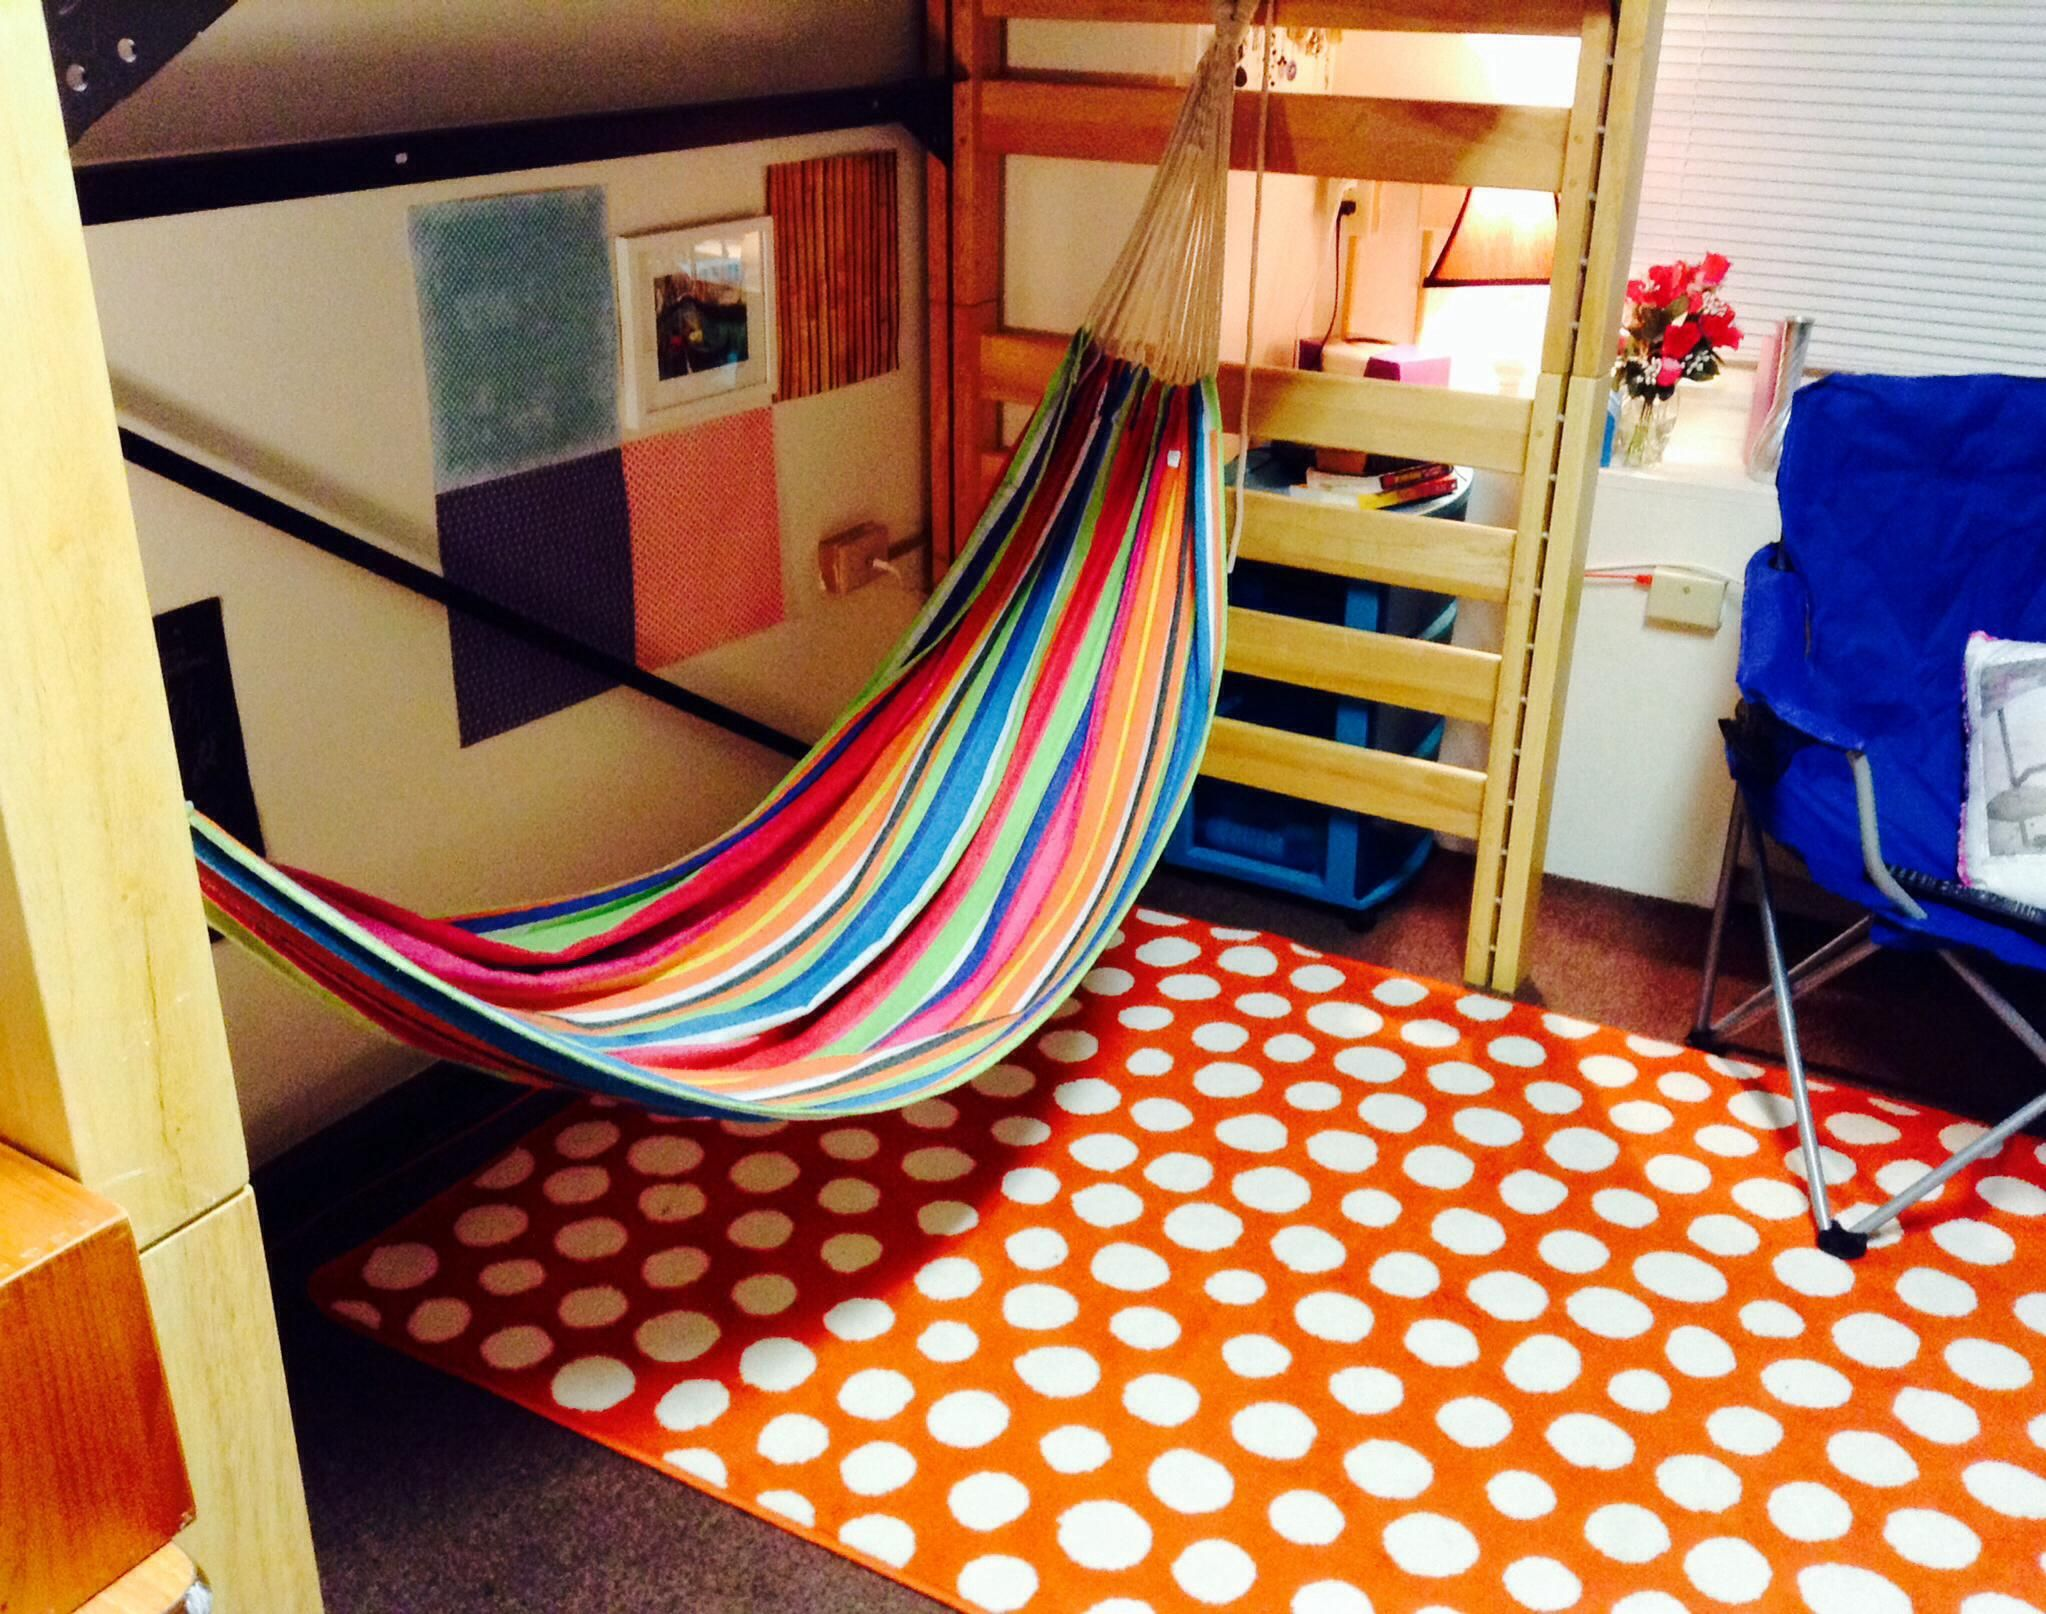 Hang A Hammock Under Your Bed In Your Dorm Room